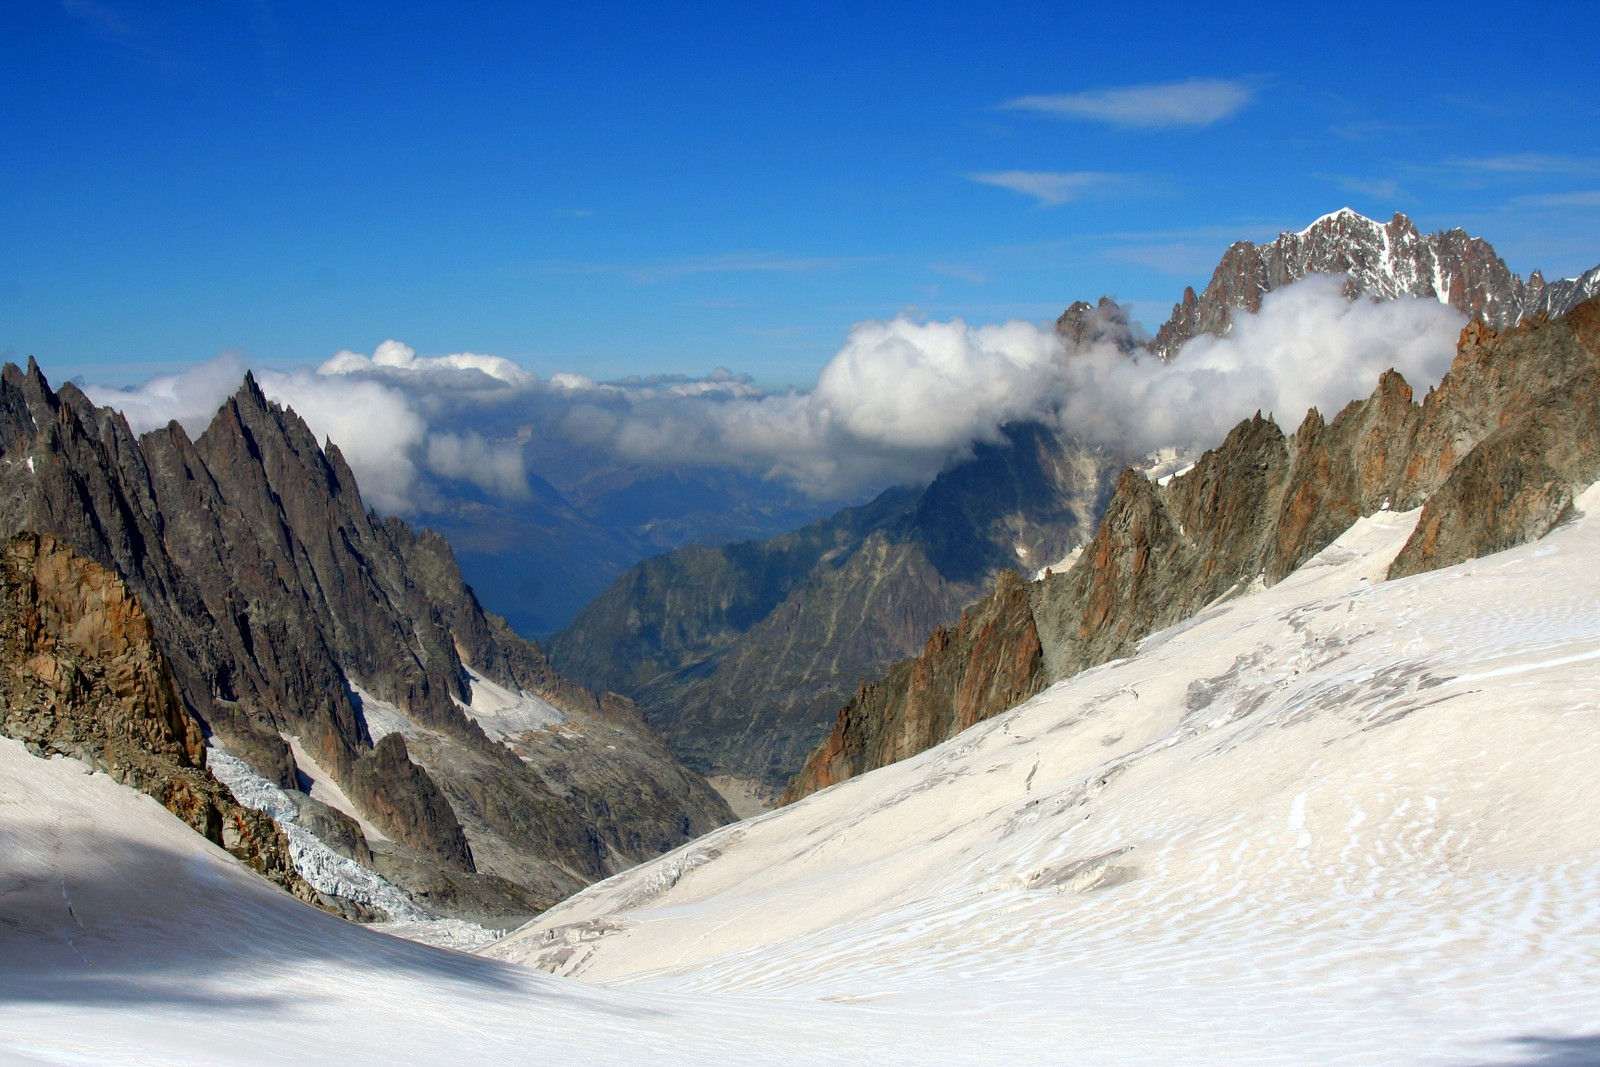 View from Pointe Helbronner - Mont Blanc